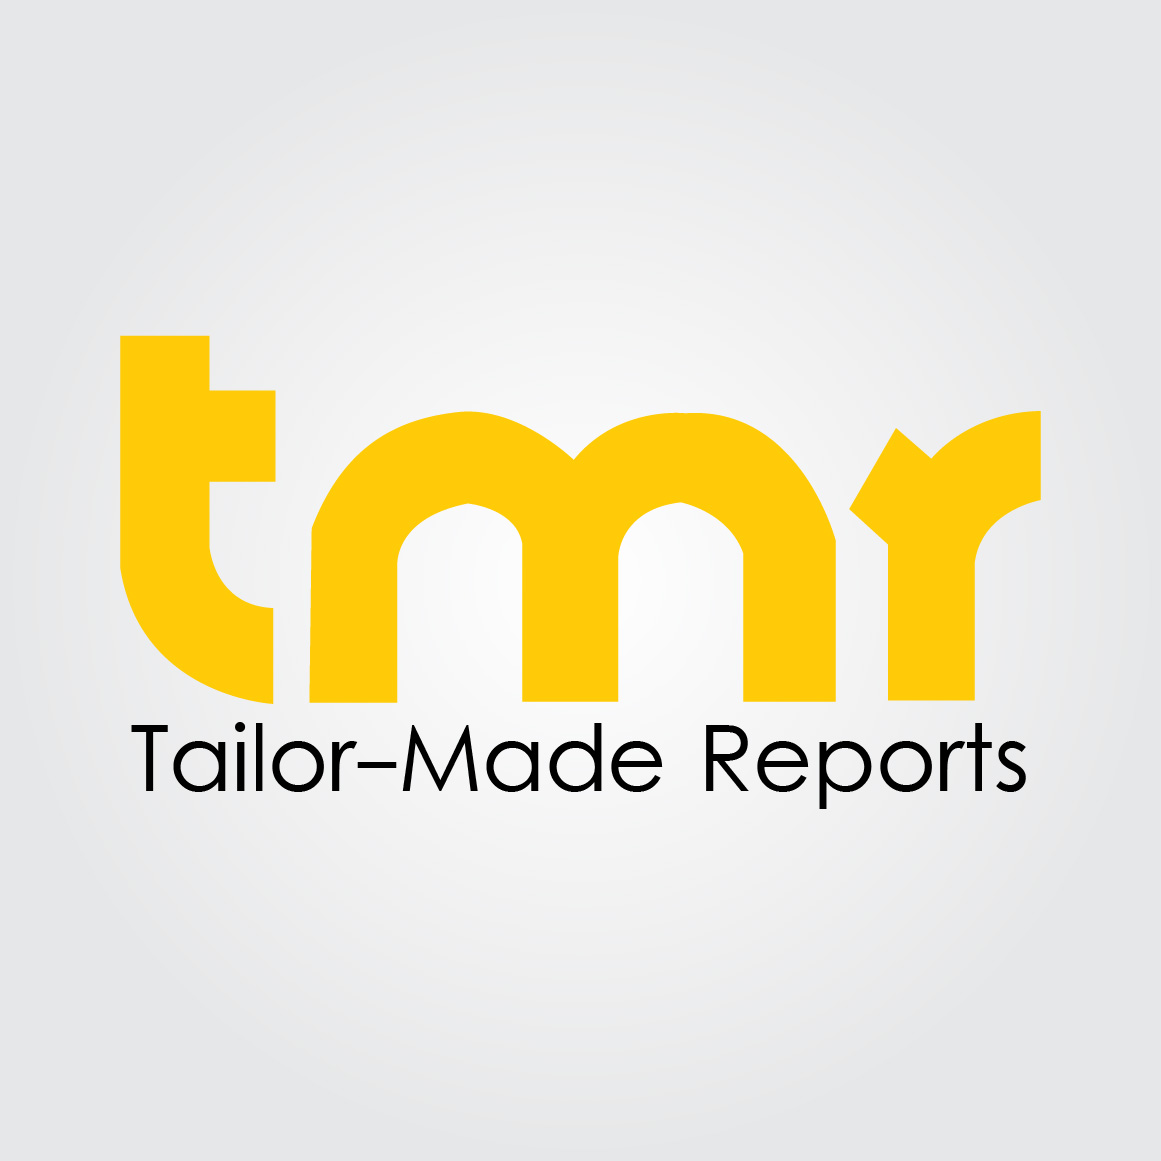 Carbonated Soft Drink Market is prognosticated to gain tremendous growth by 2030 | TMR Research Study